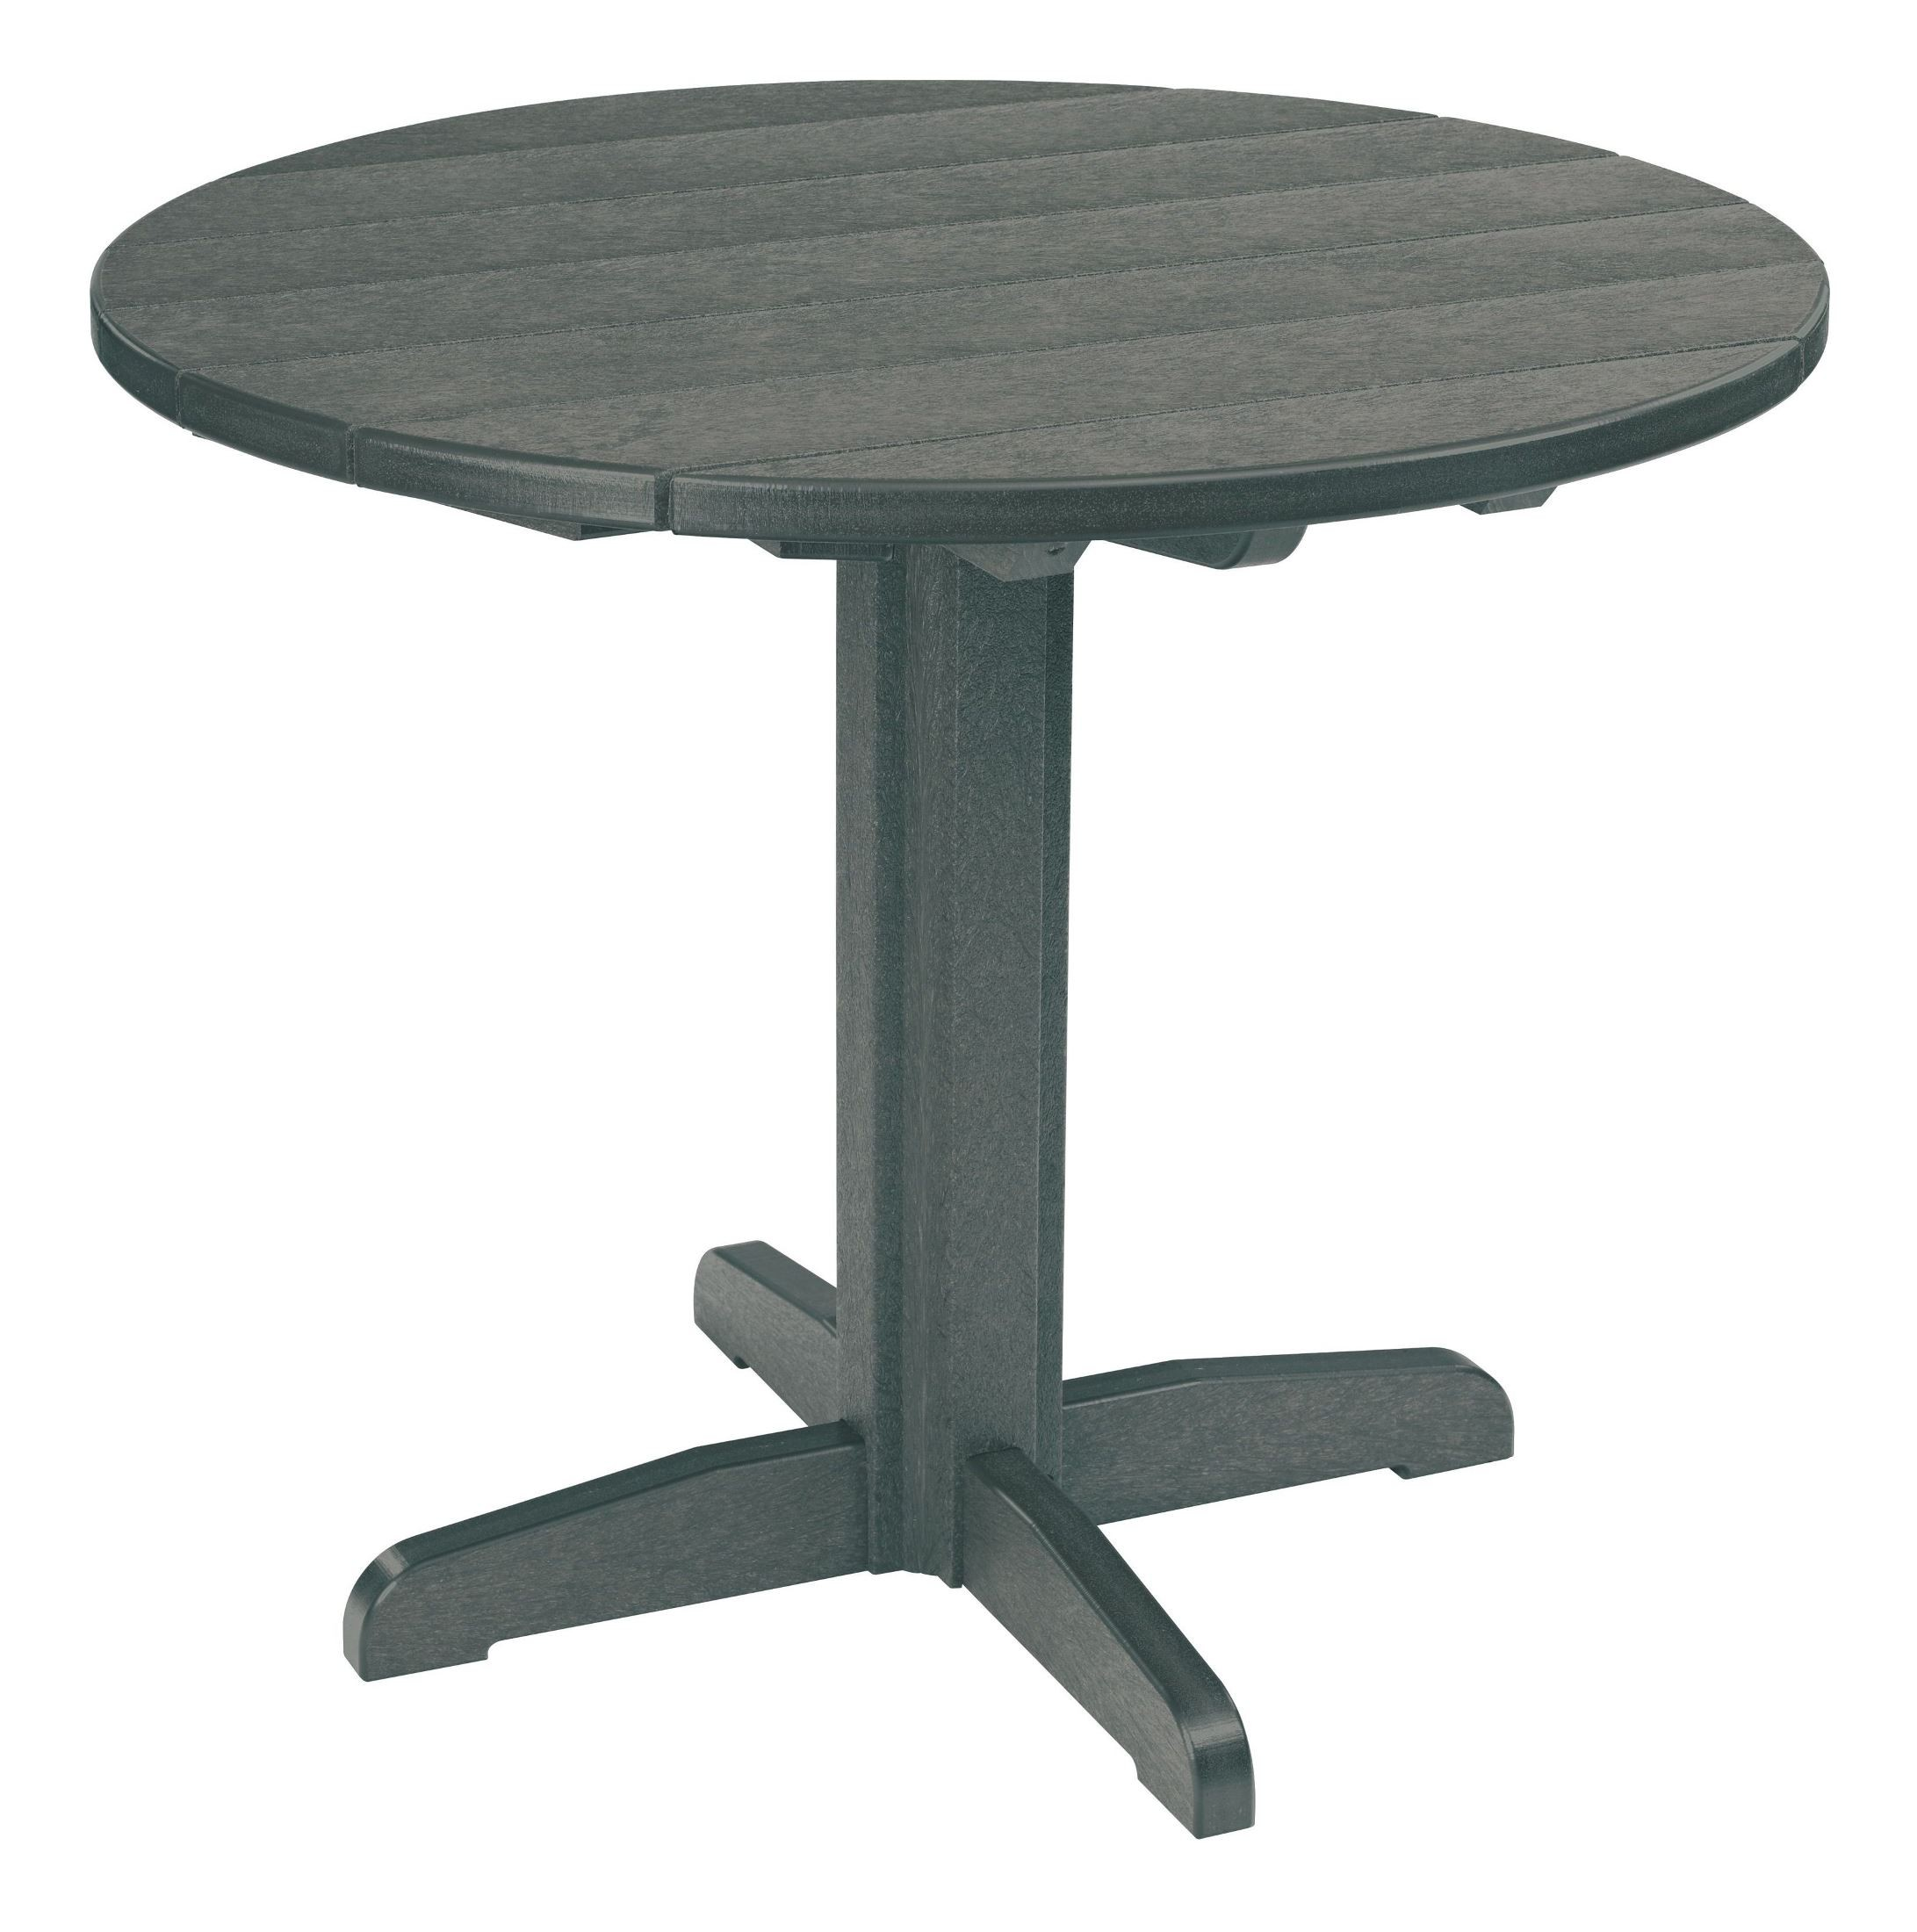 Generations Slate Grey 37quot Round Pedestal Dining Table  : tbt2218tt02tb1218 from colemanfurniture.com size 2183 x 2200 jpeg 395kB